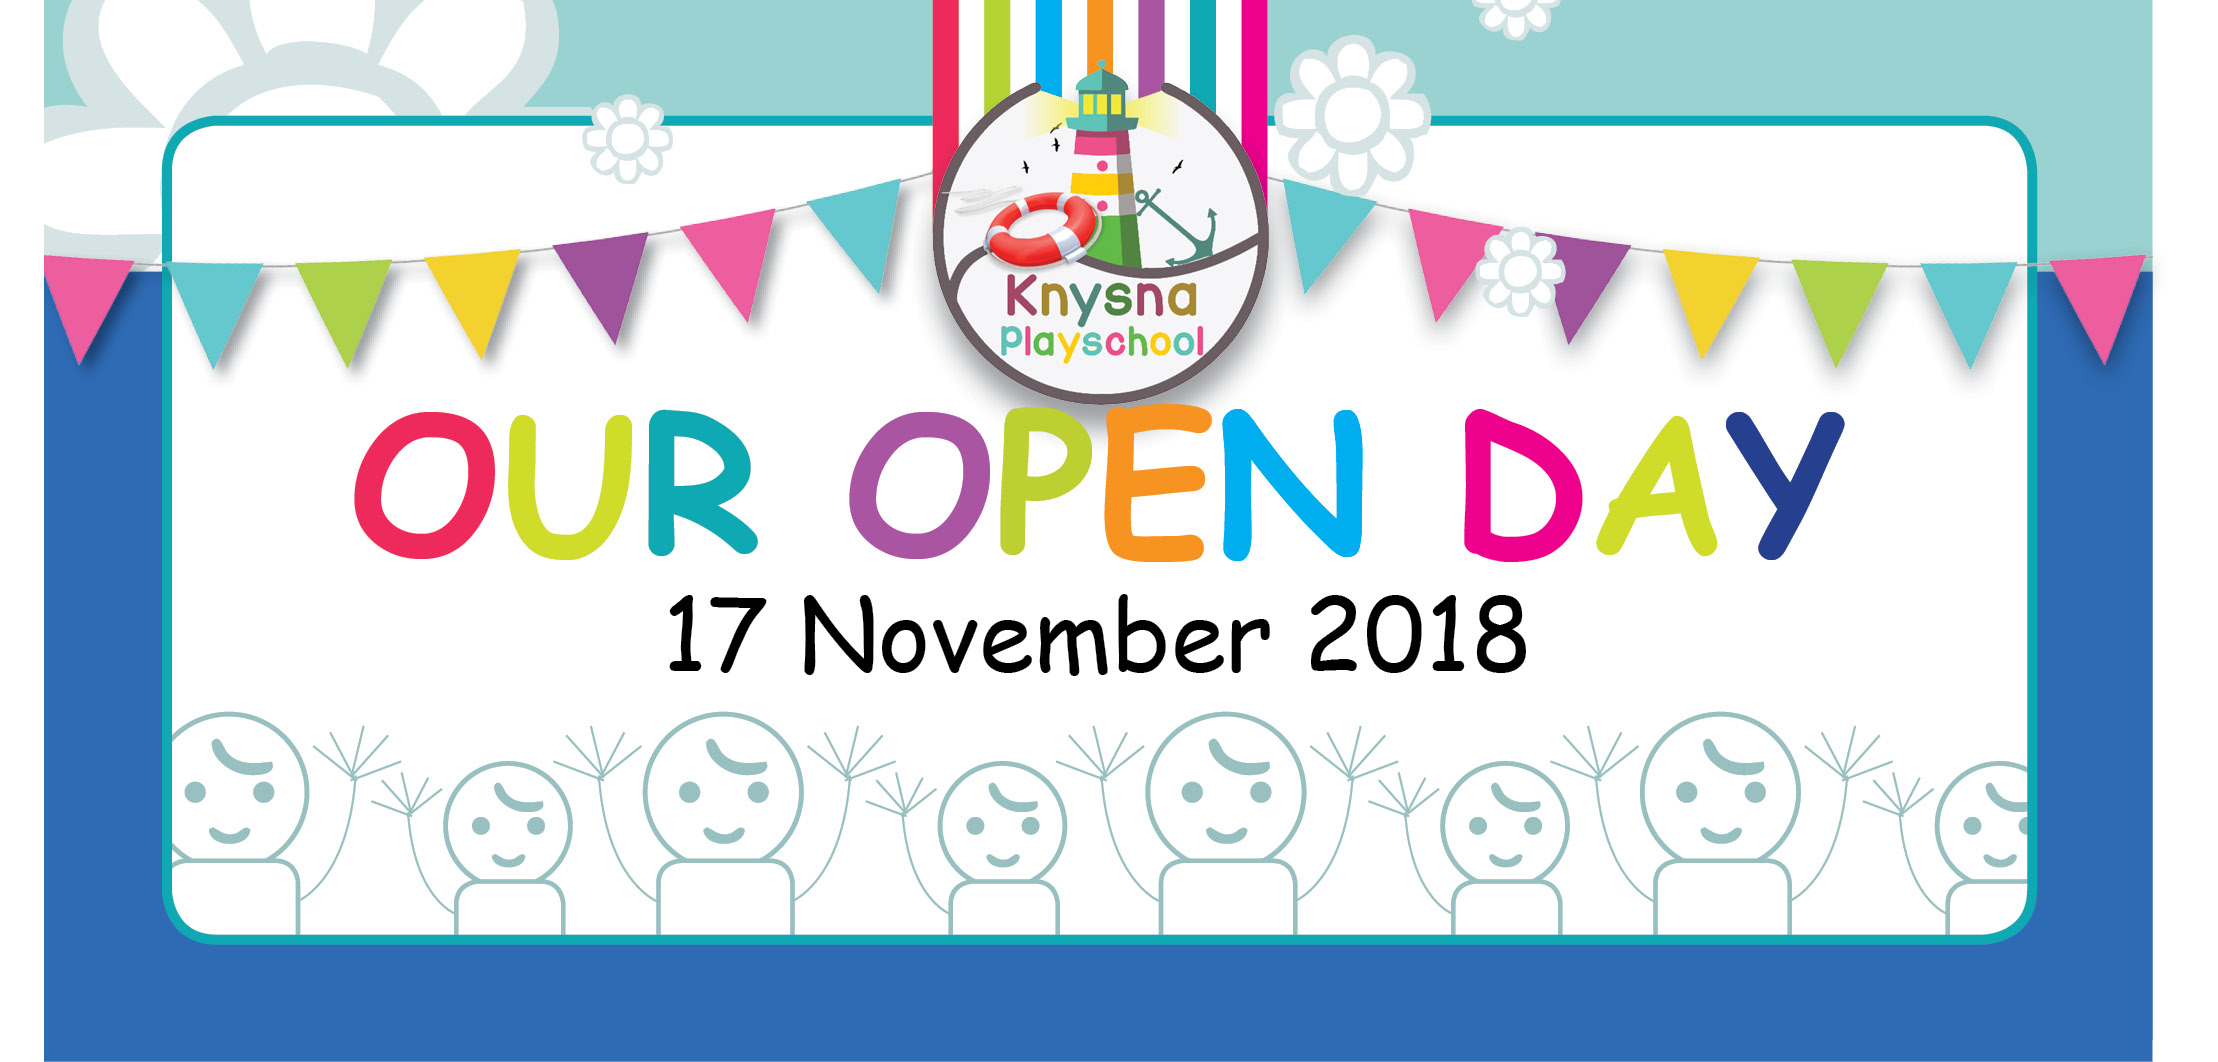 Open days at Knysna Playschool